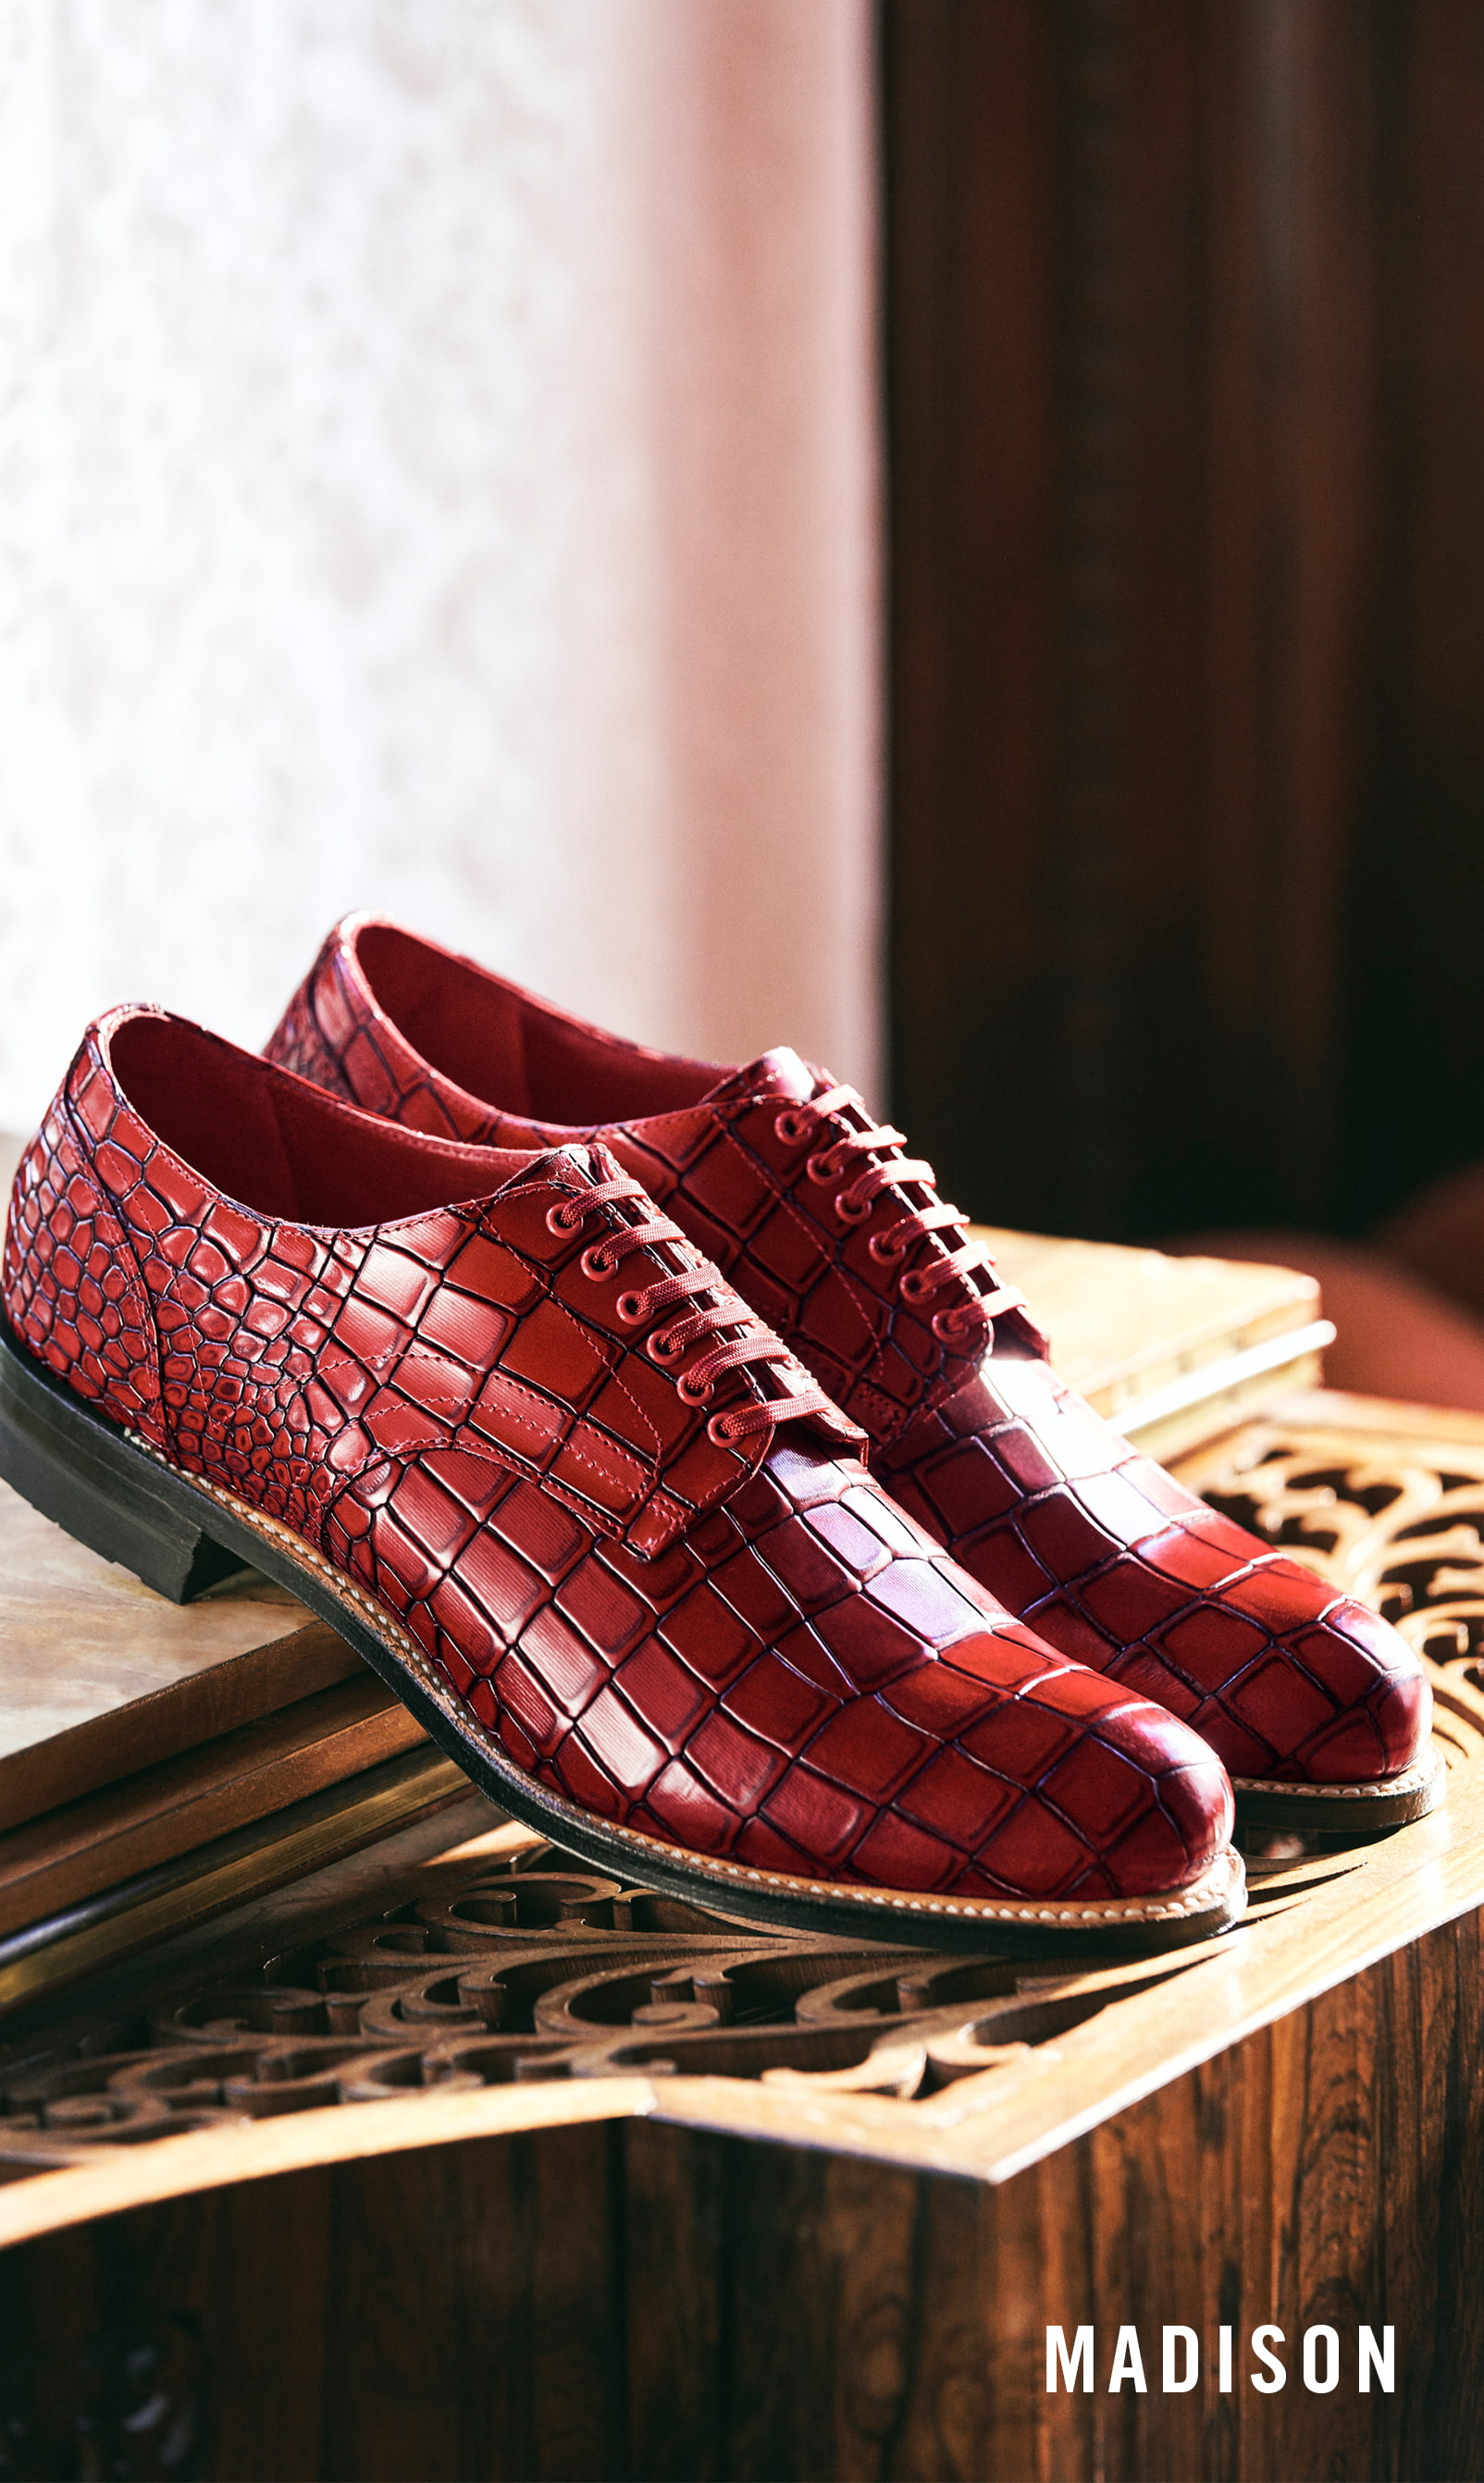 Men's Classic Shoes category. The featured product is the Madison Plain Toe Oxford in Red.